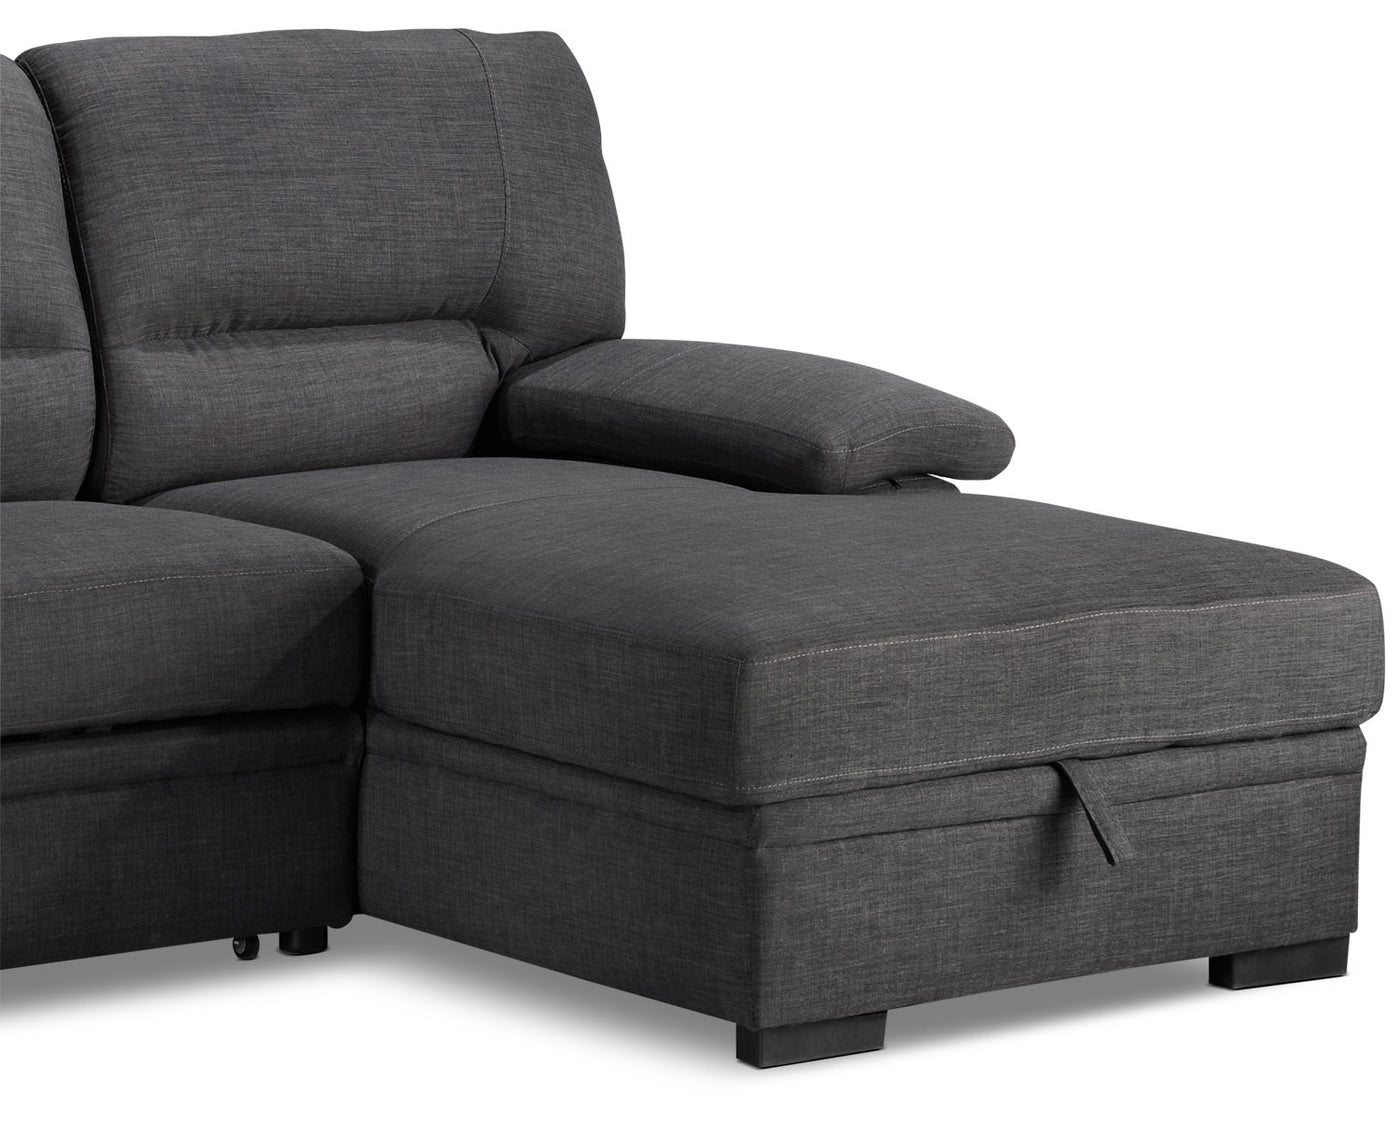 Tessaro Chaise Sofa with Pop-Up Bed - Charcoal | Leon's on occasional bed, sleeper bed, conestoga wagon bed, upholstered bed, sun bed, swing bed, desk bed, tufted bed, lounge bed, floor bed, ikea day bed, cushion bed, bed bed, sleep bed, lounger bed, ottoman bed, love seat bed, settee bed, leather bed, brown bed,